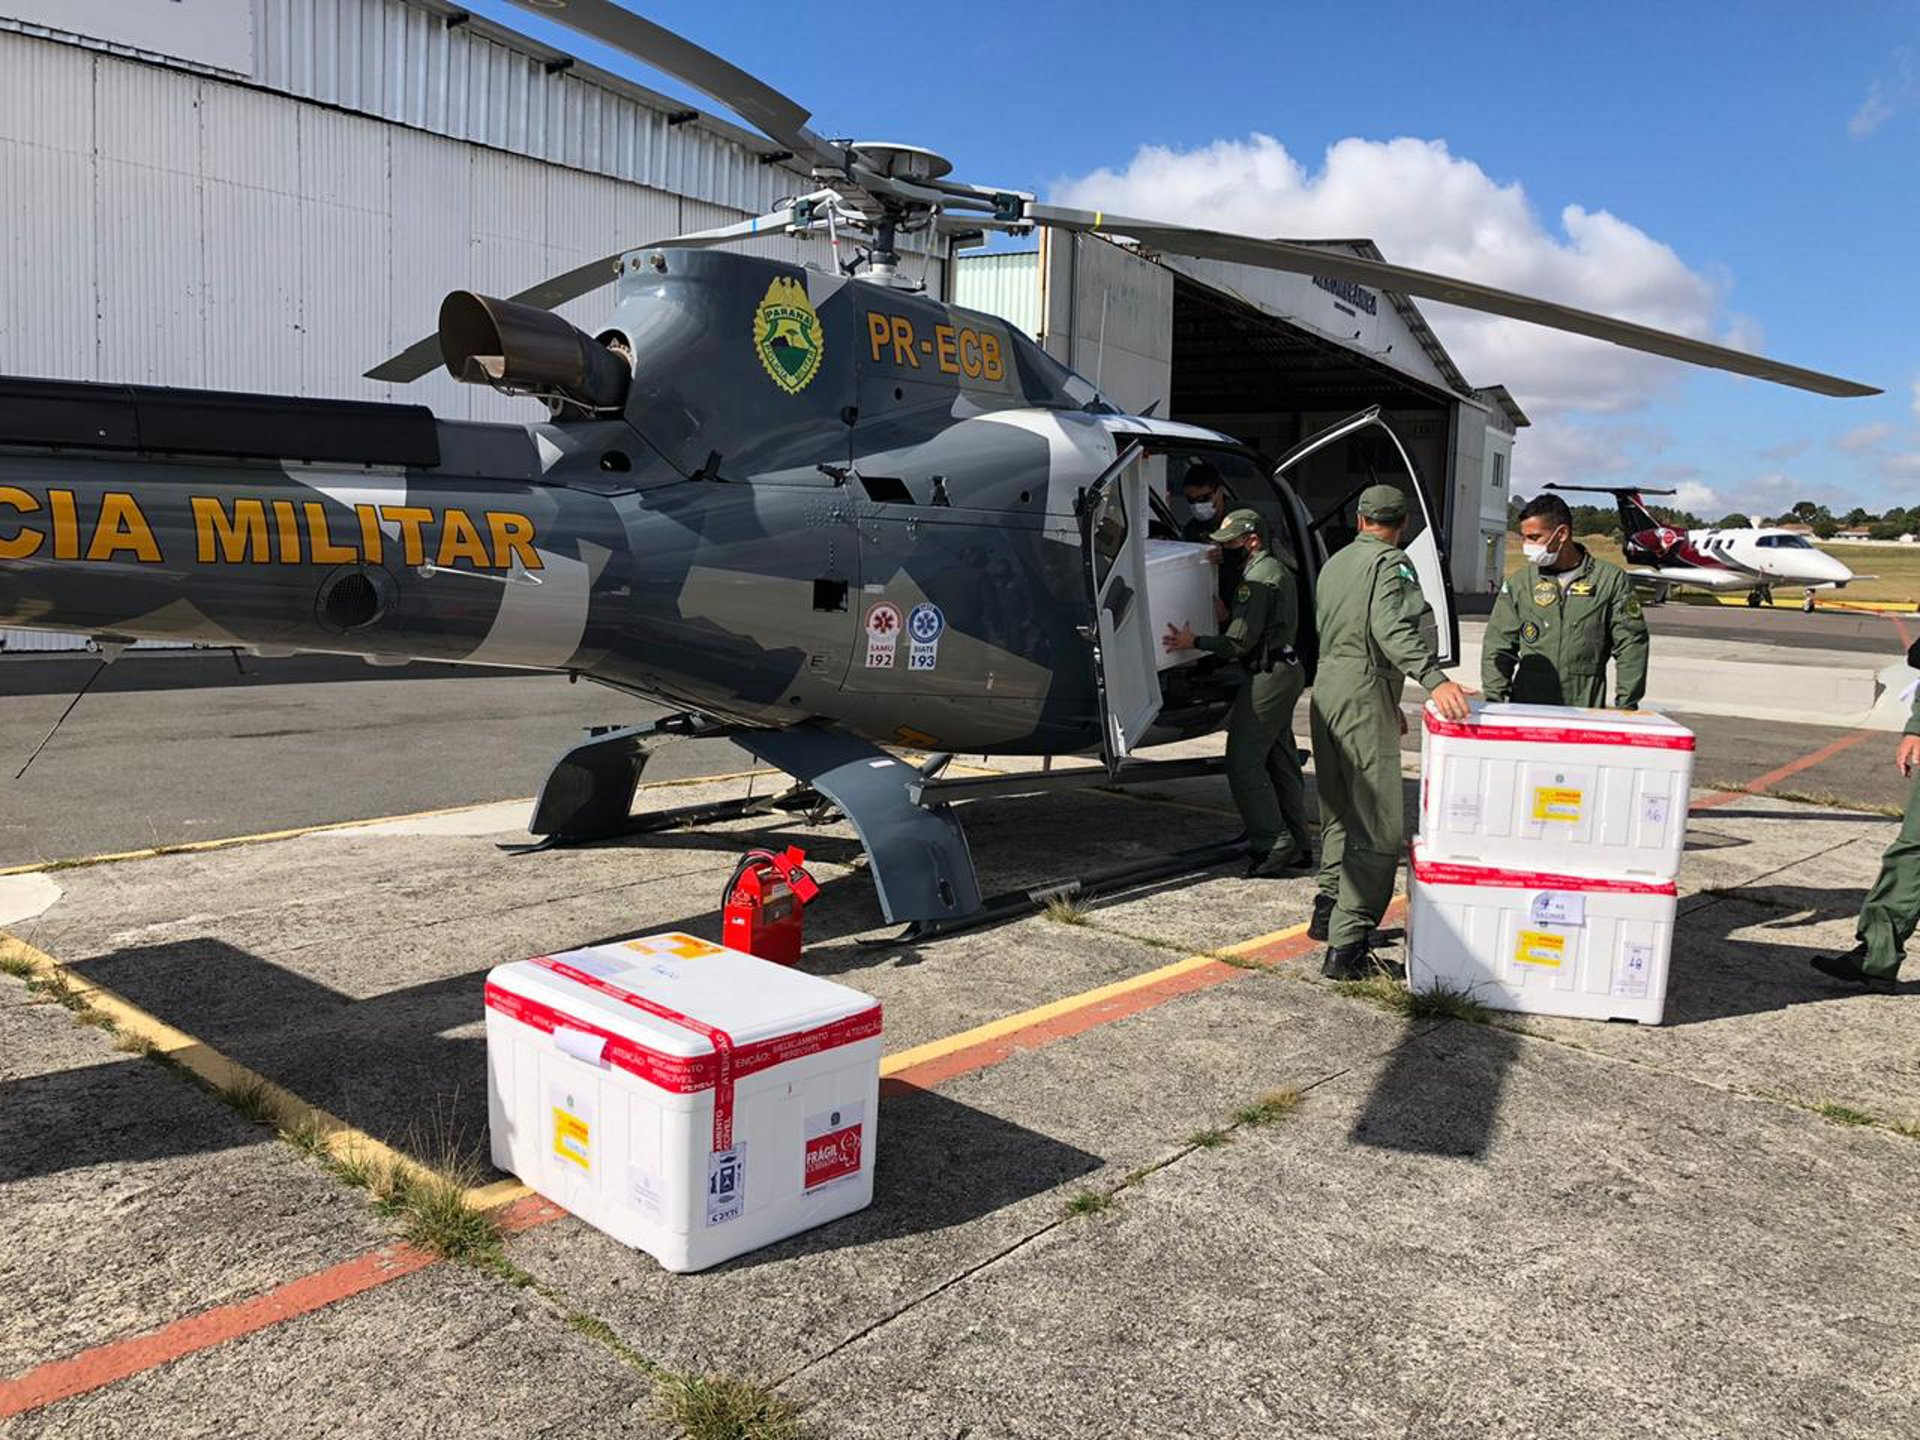 The Air Operations Battalion of the State Military police BPMOA  adopted new protocols to protect the crews during the pandemic aboard their fleet of H130s, locally known as Falcões.